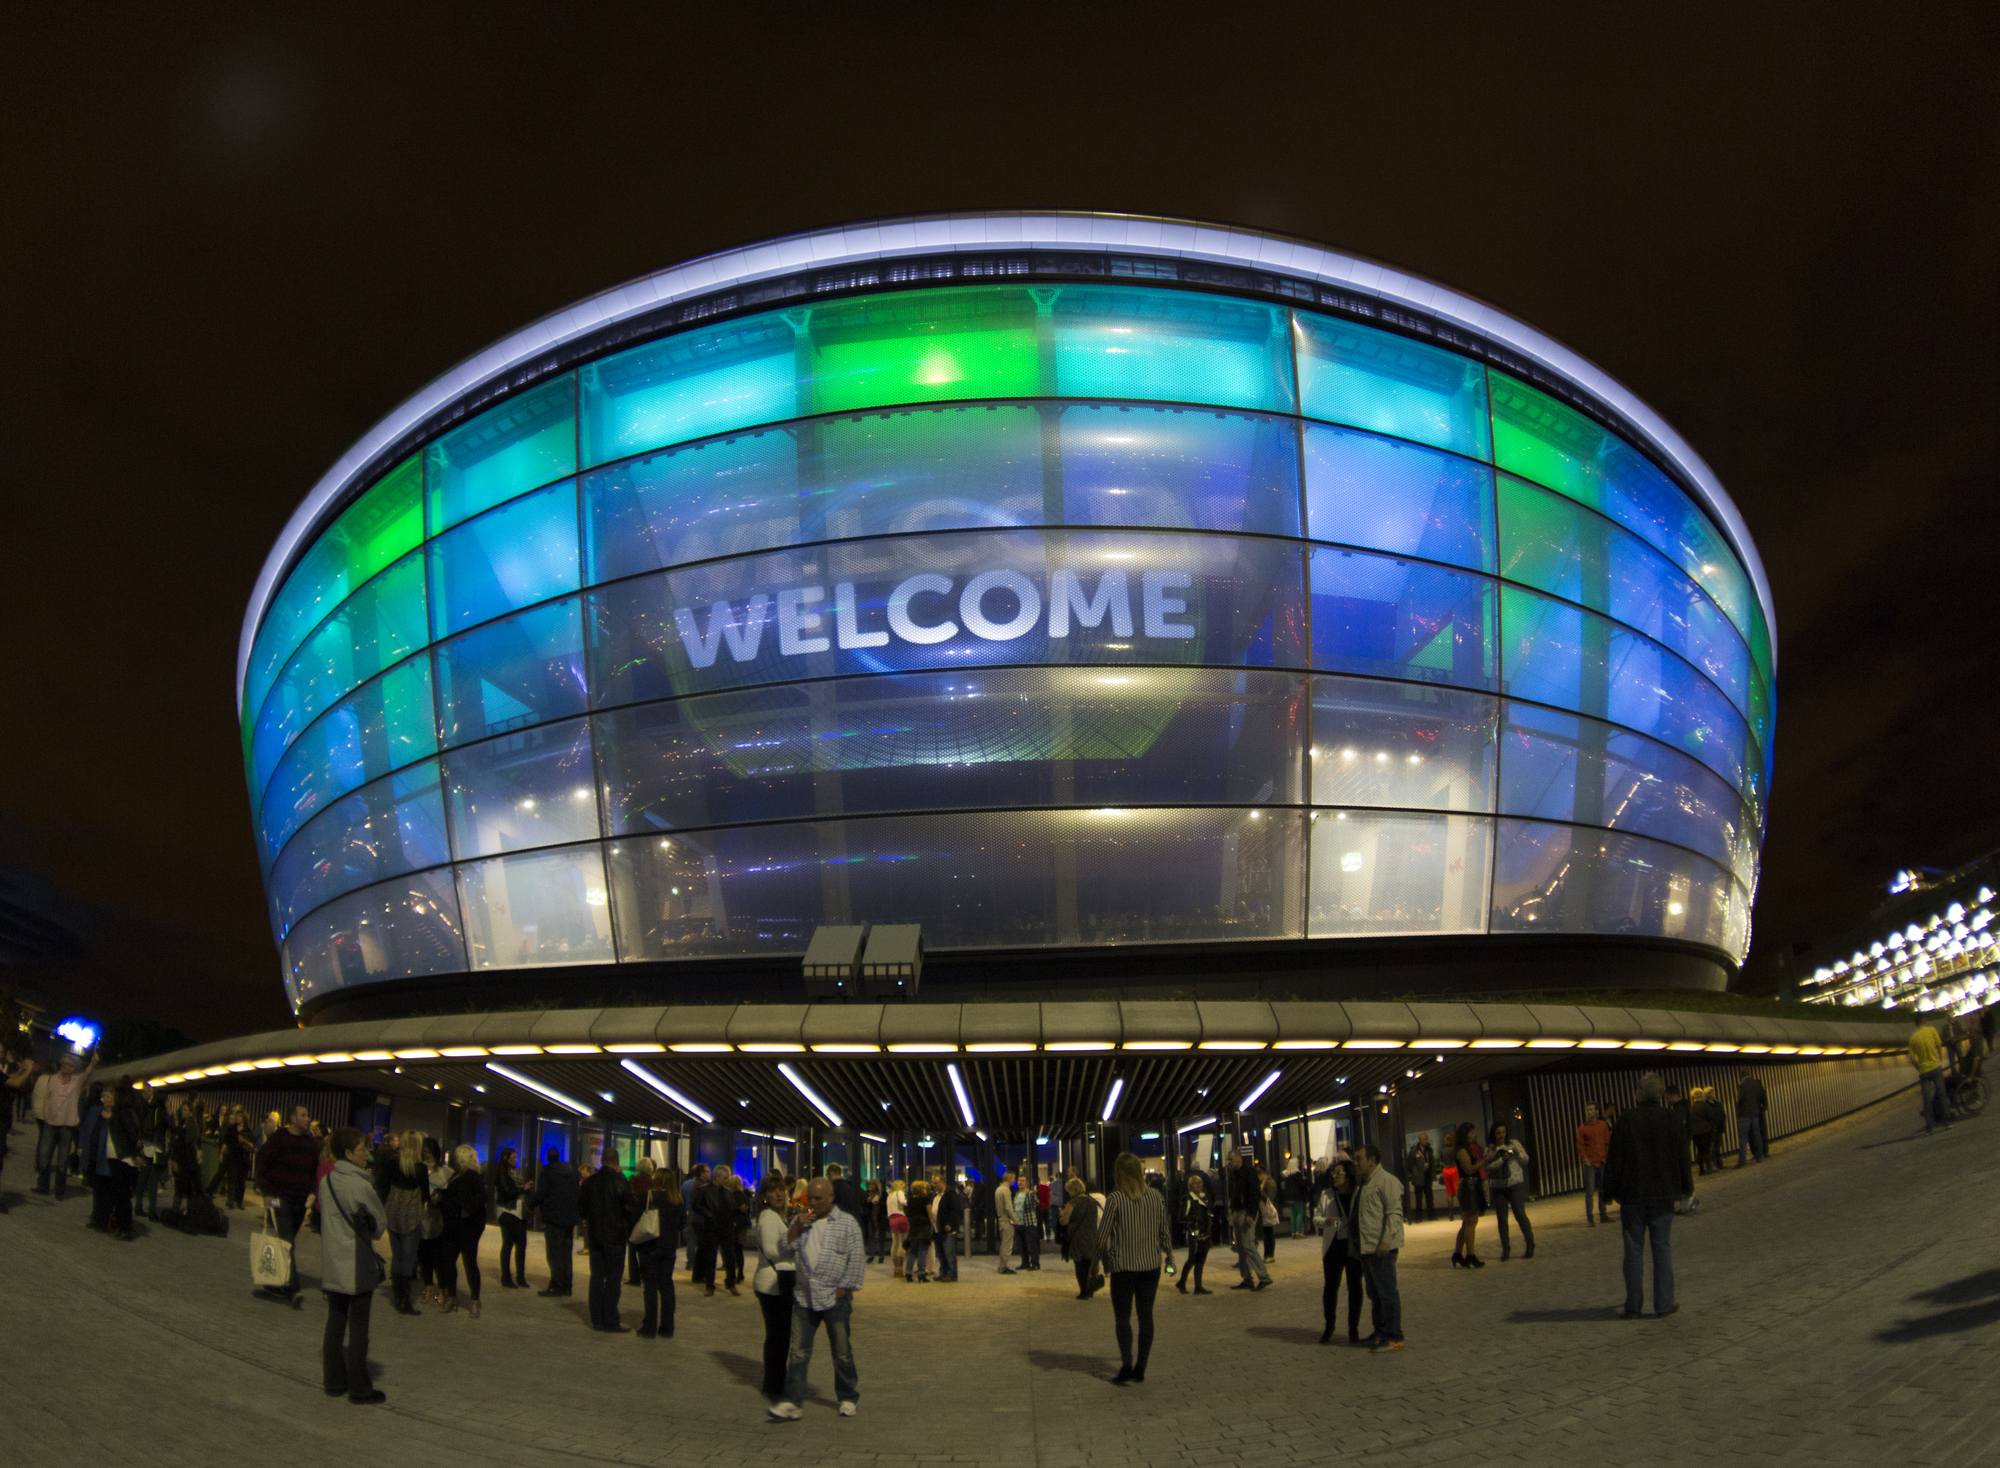 http://ad009cdnb.archdaily.net/wp-content/uploads/2014/04/53504cf8c07a809c1a00001a_foster-partners-sse-hydro-arena-features-translucent-skin-innovative-seating-system_foto09.jpg